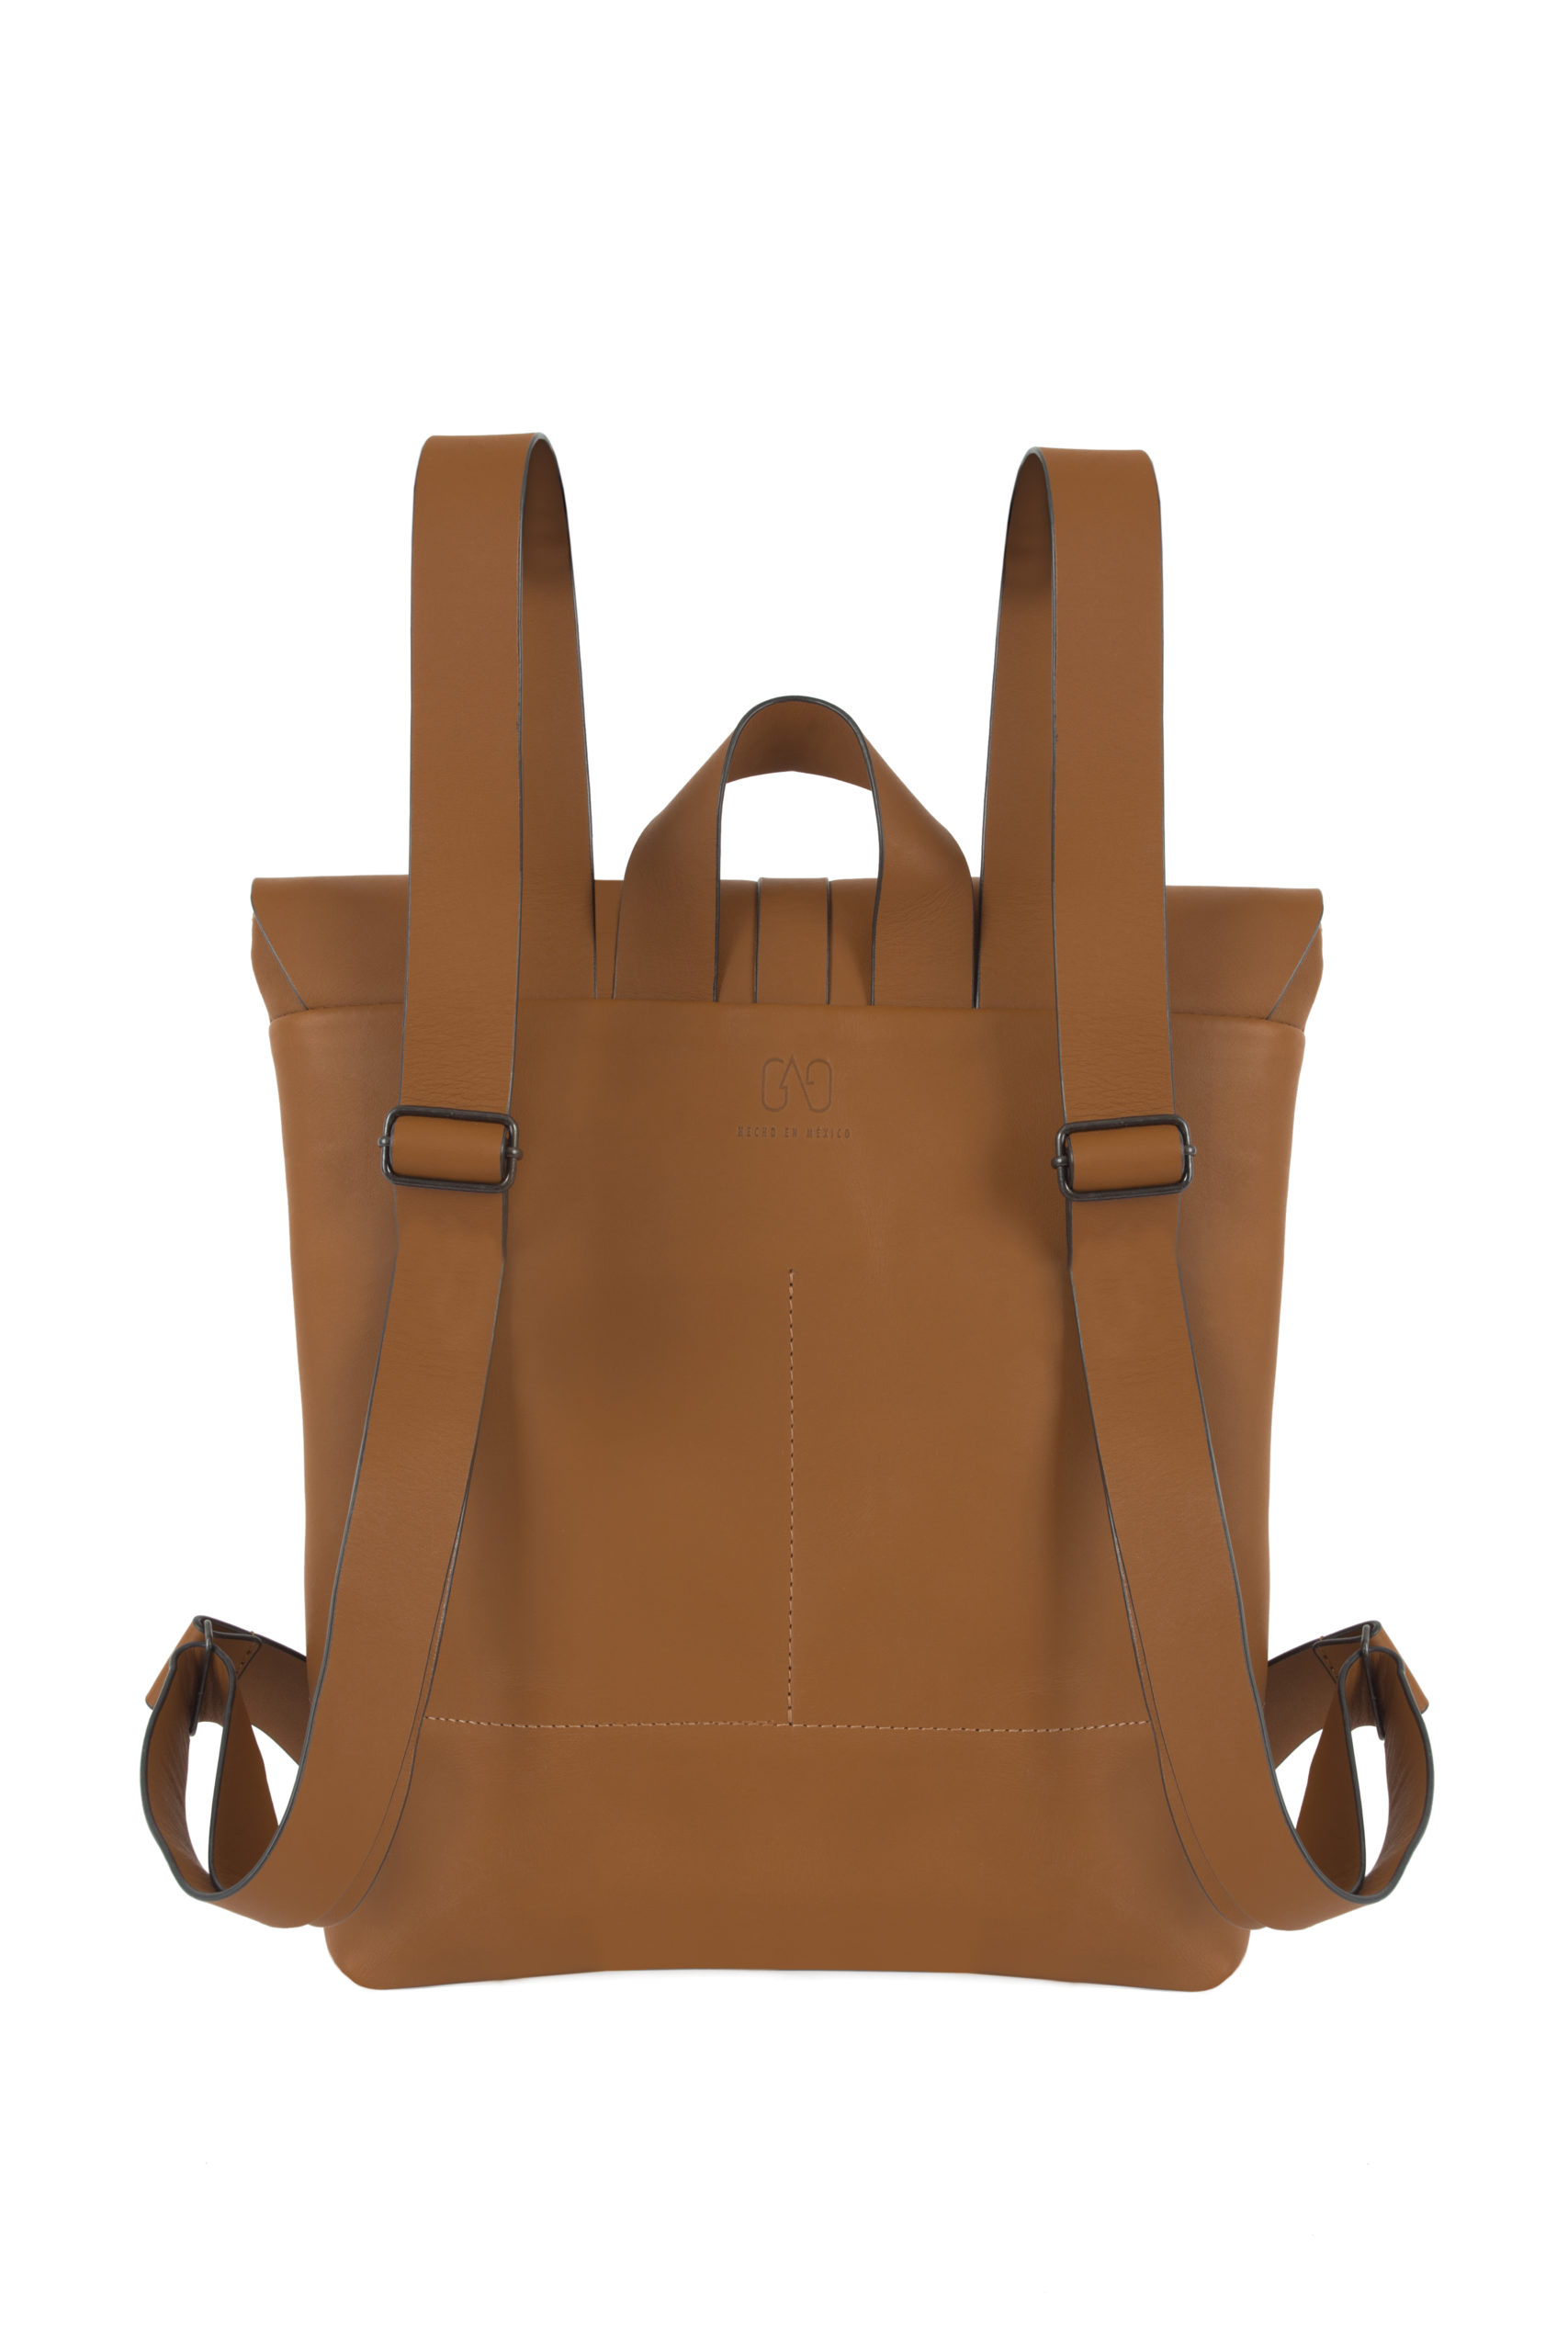 GAG | BACKPACK DESIERTO